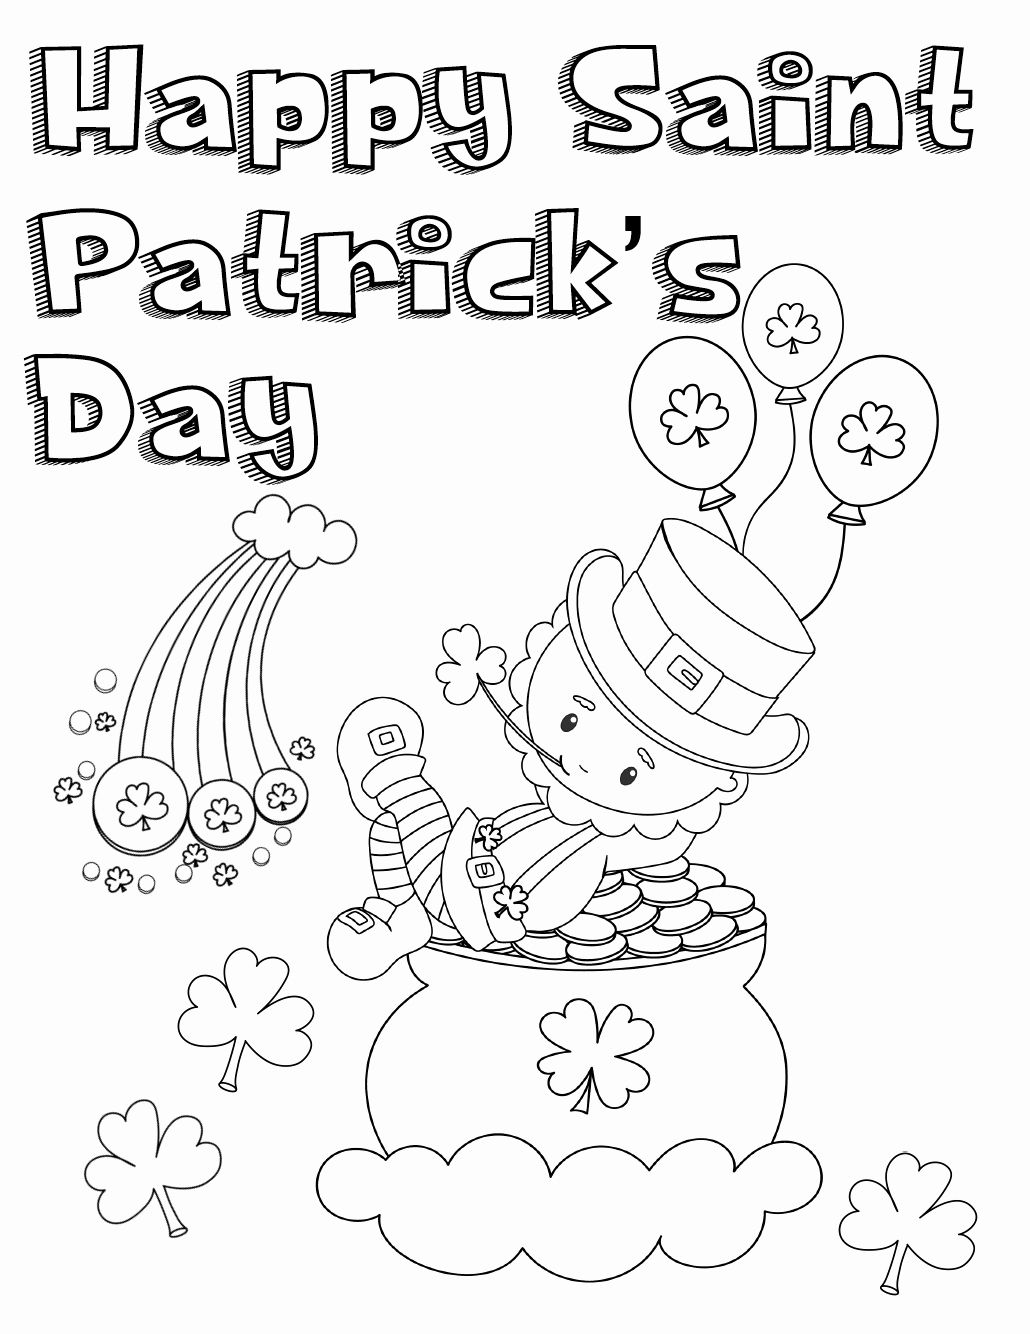 Saint Patrick Printable Coloring Pages Best Of Free Printable St Patrick S Day Coloring Pages 4 Designs